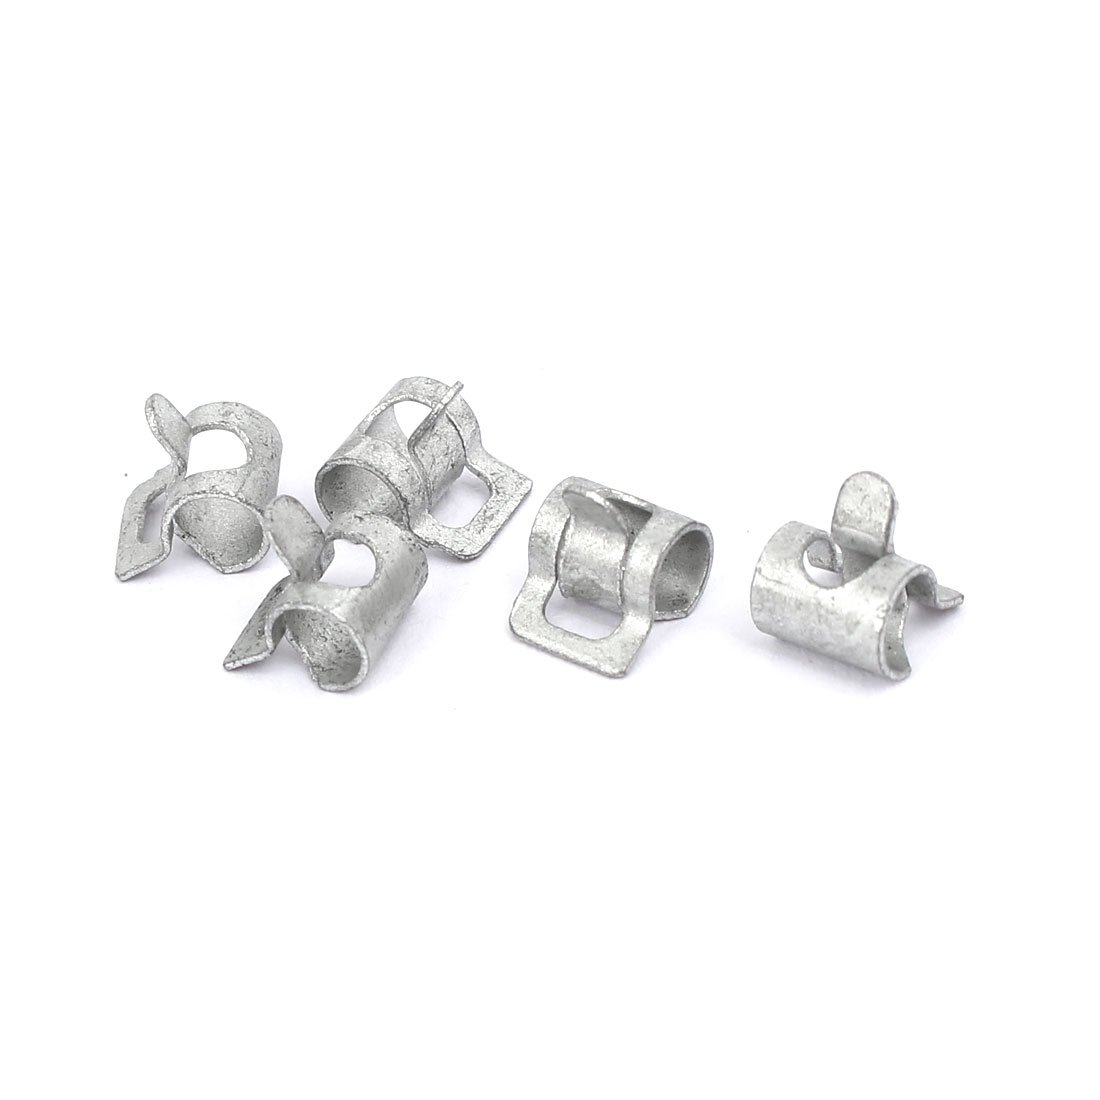 sourcingmap® 4mm Inner Dia Dacromet Coating Spring Clip Water Pipe Fuel Line Hose Clamps 5pcs a17011900ux0662